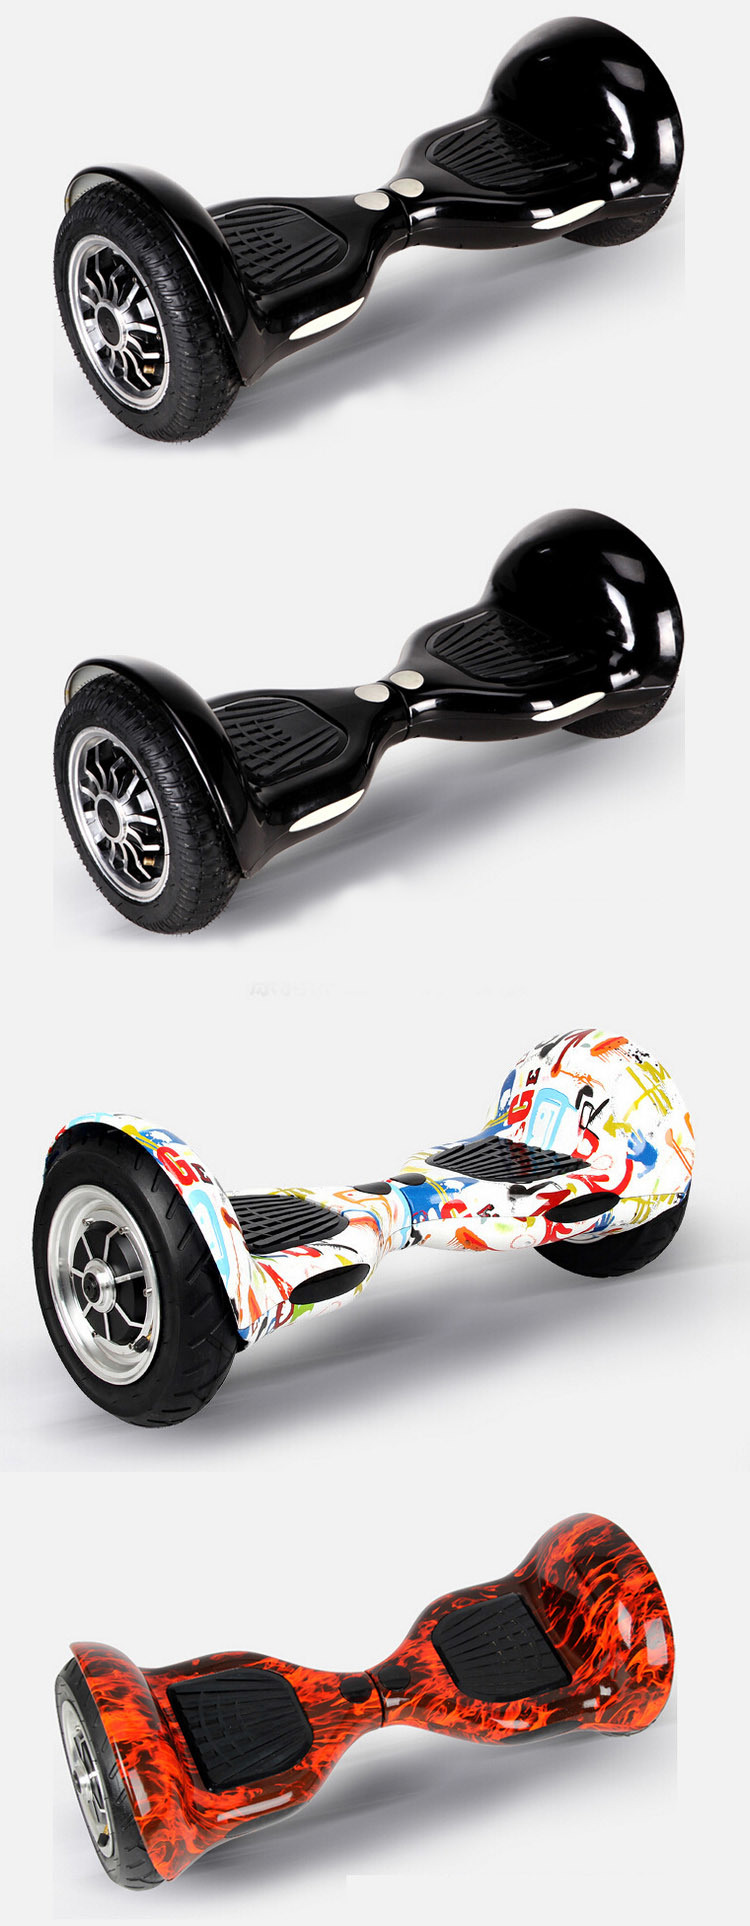 Smartek OEM Electric Self Balance Hiphop Graffiti Patinete Electrico E-Scooter Gyroscooter Scooter with Bluetooth S-002-Cn